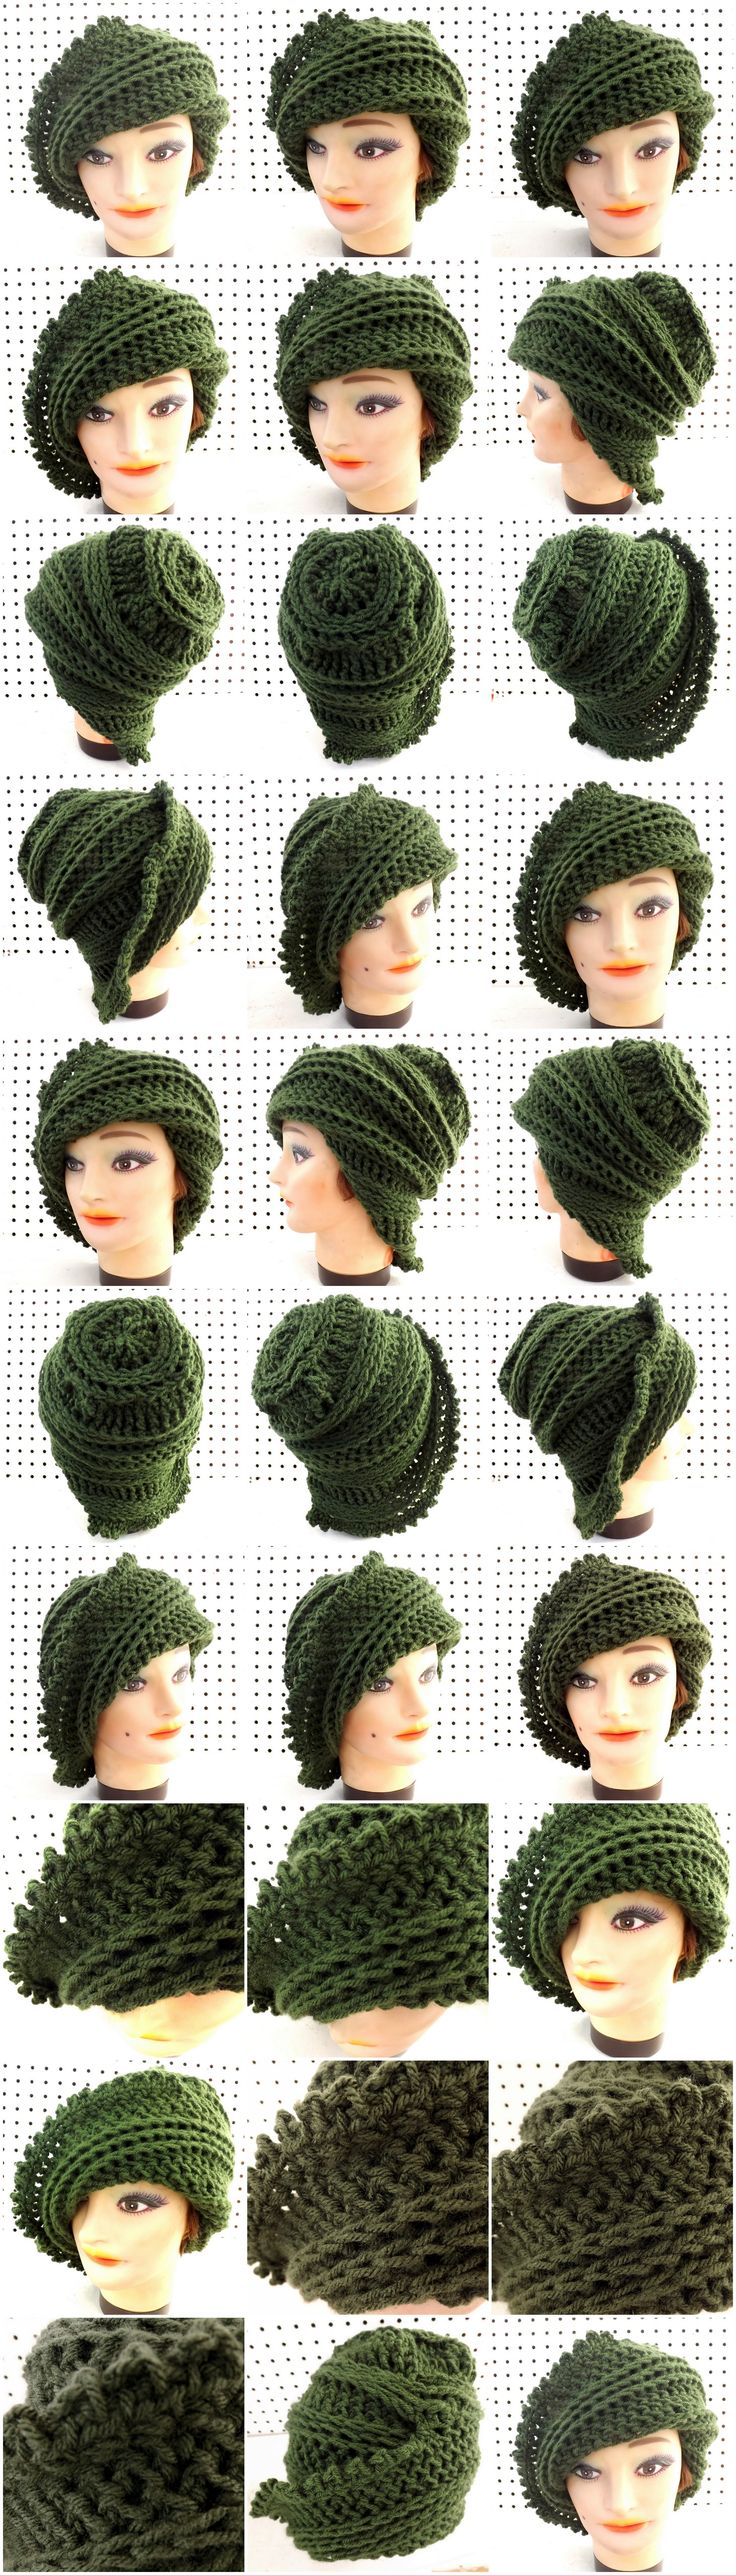 Unique Crochet LISA Beanie Hat in Olive Green